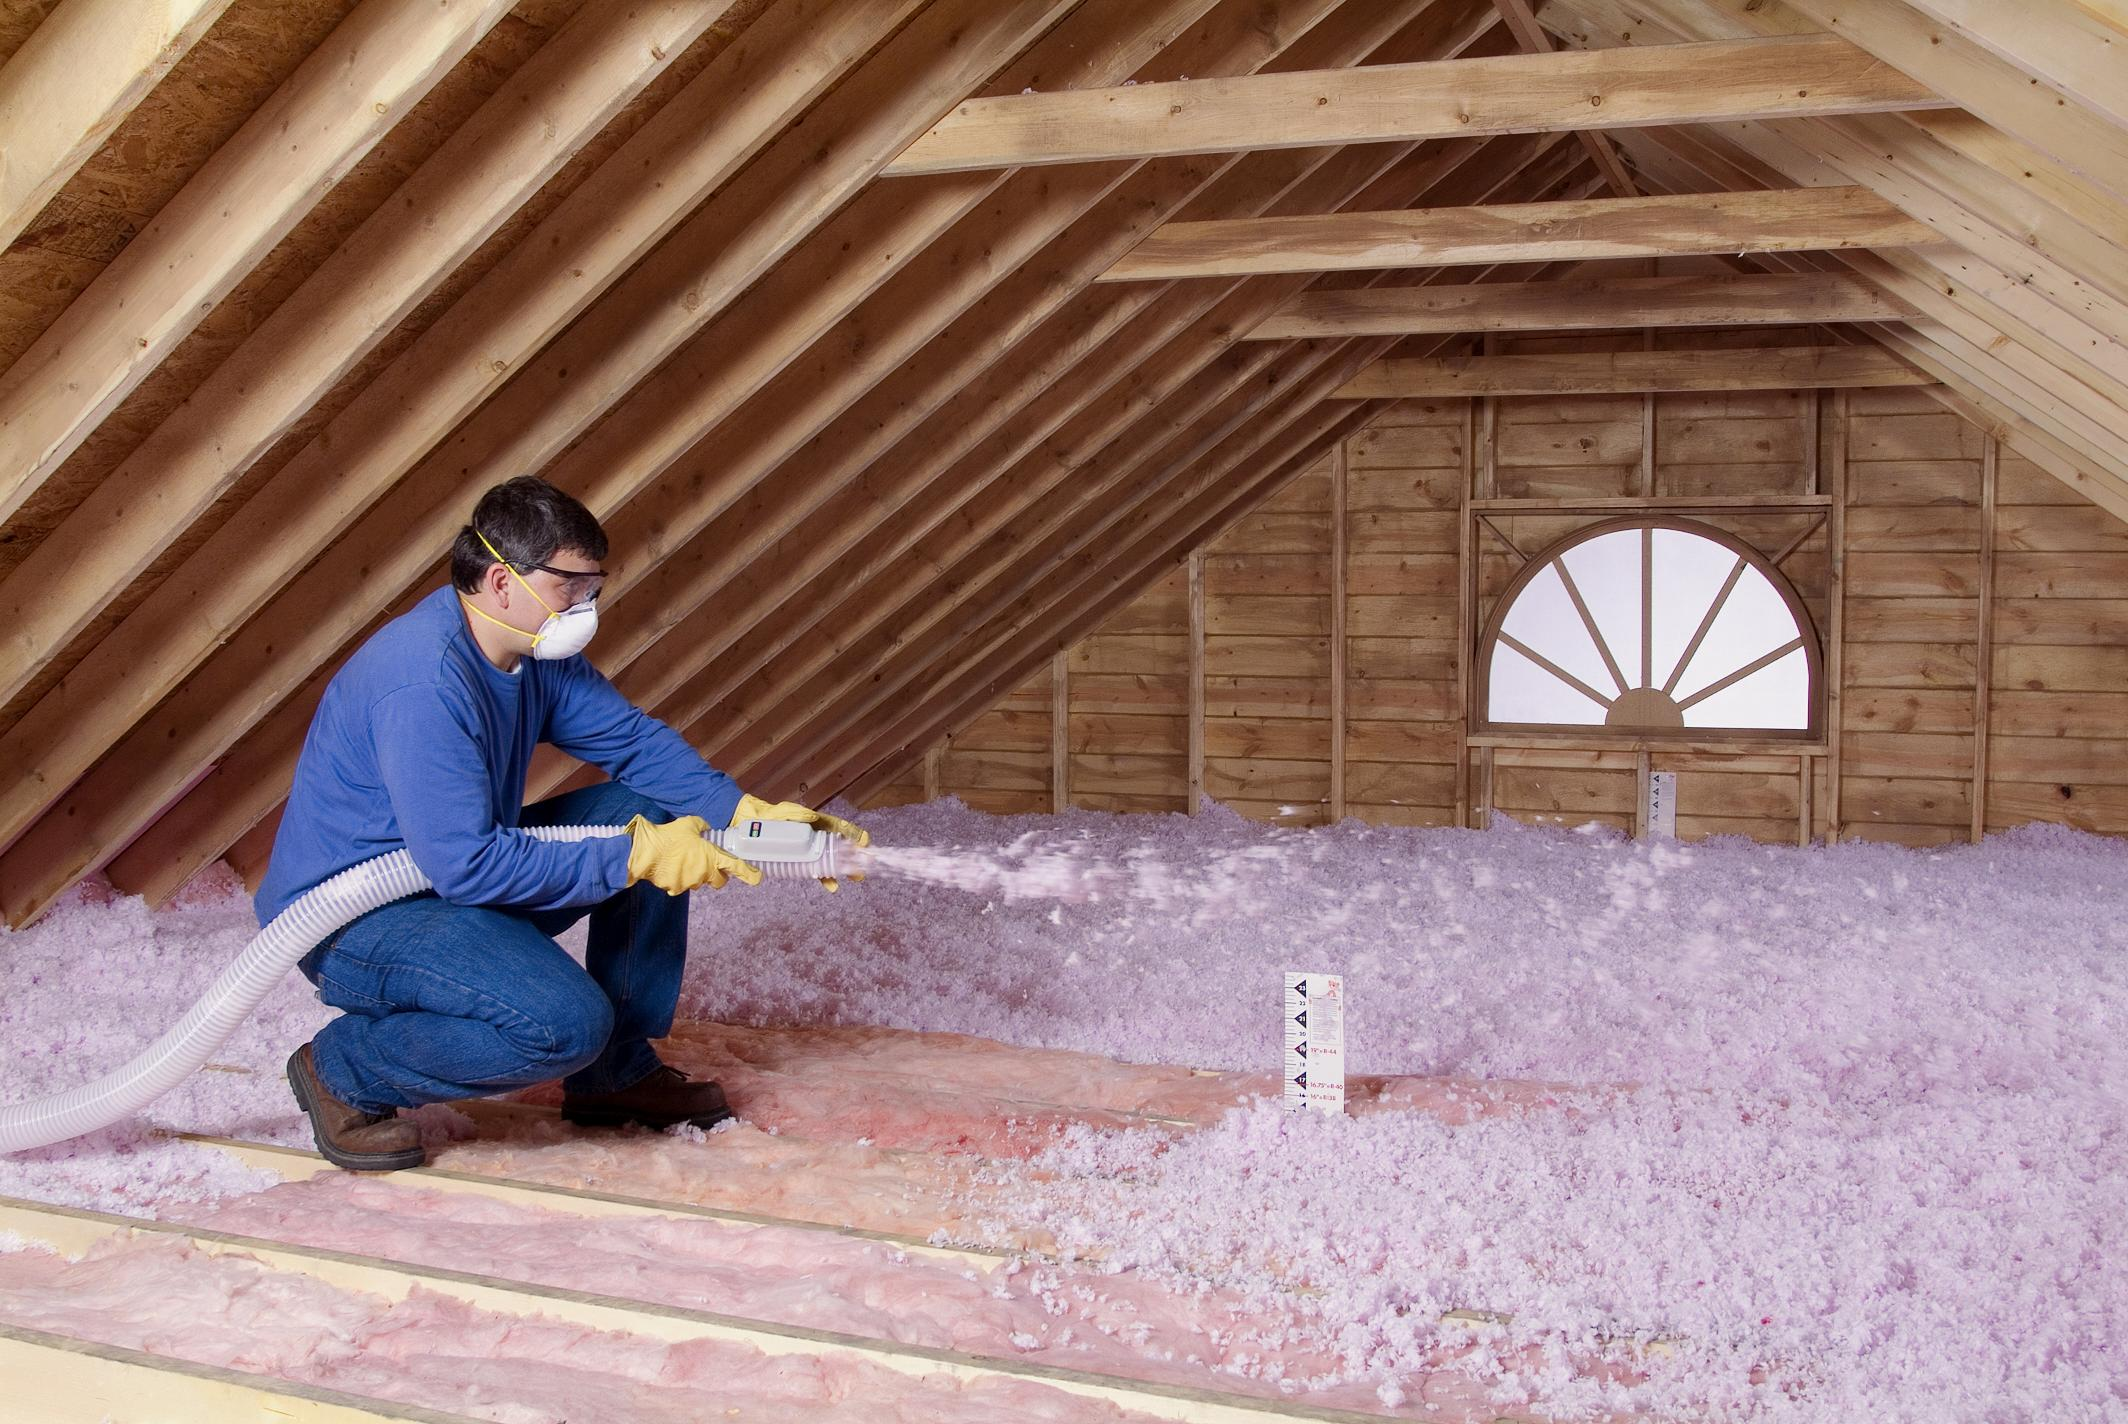 What Are The Benefits Of Hiring An Attic Insulation Company?